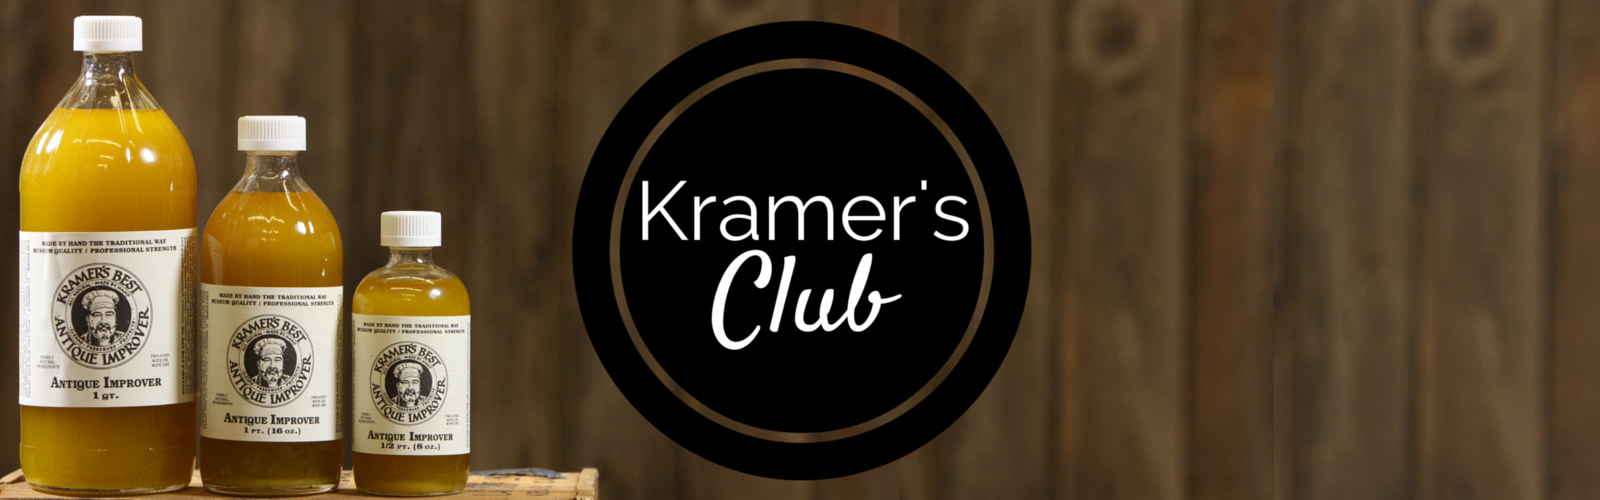 RoofTop Antiques presents Kramer's Club